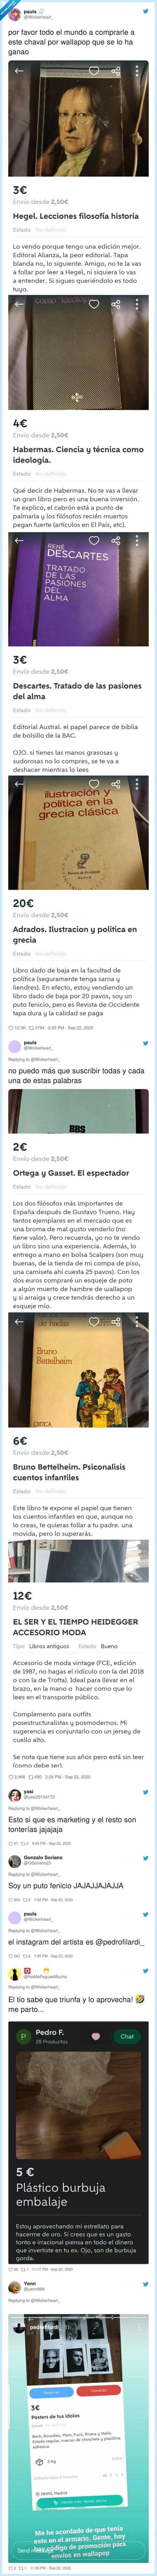 filosofía,libros,marketing,venta,wallapop